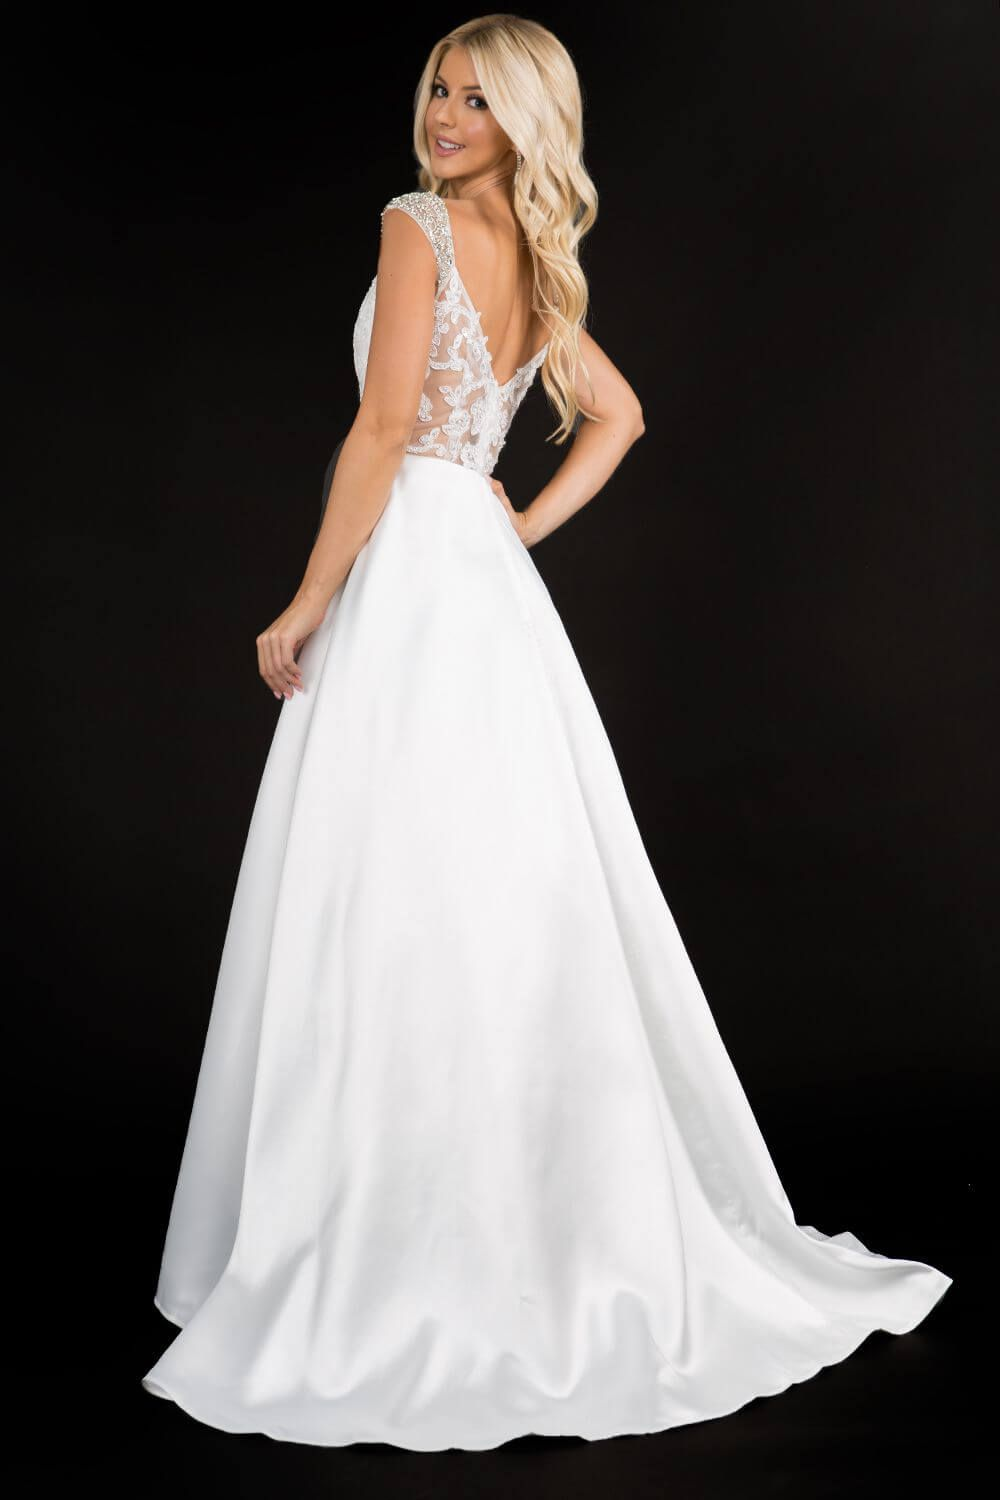 Style 2300 Nina Canacci White Size 14 Plus Size Prom Sweetheart A-line Dress on Queenly